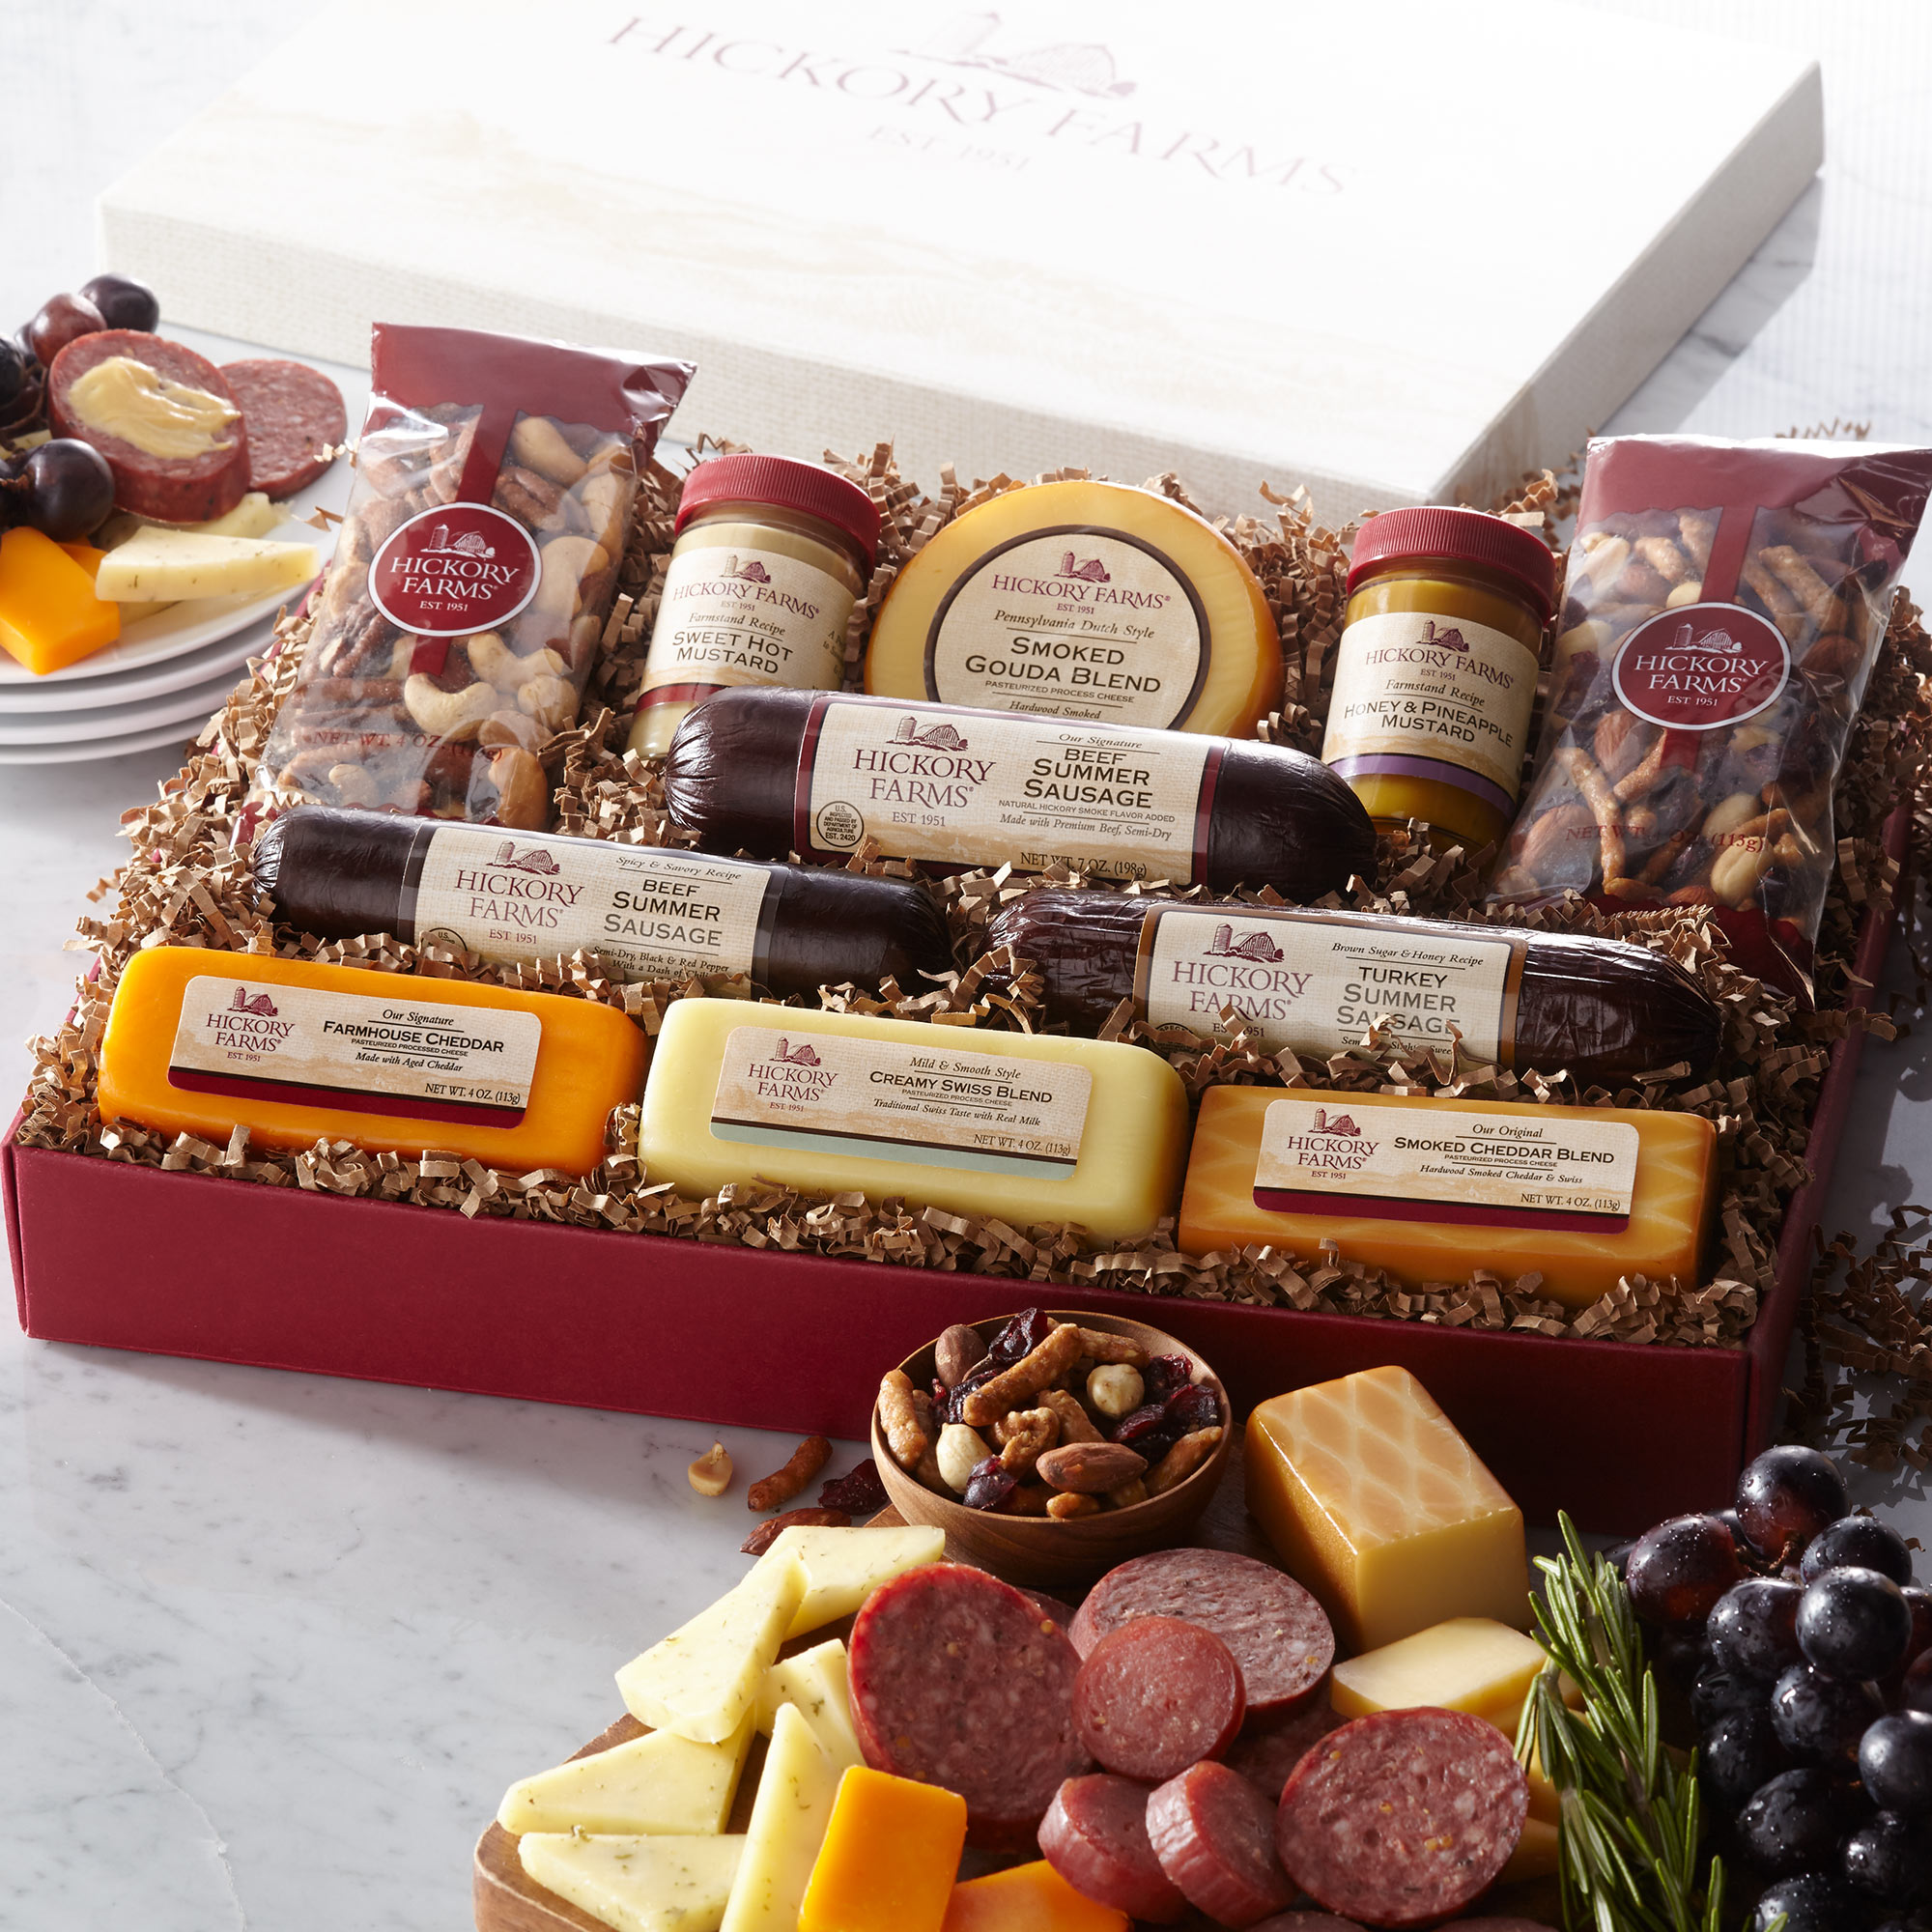 signature party planner gift box gift